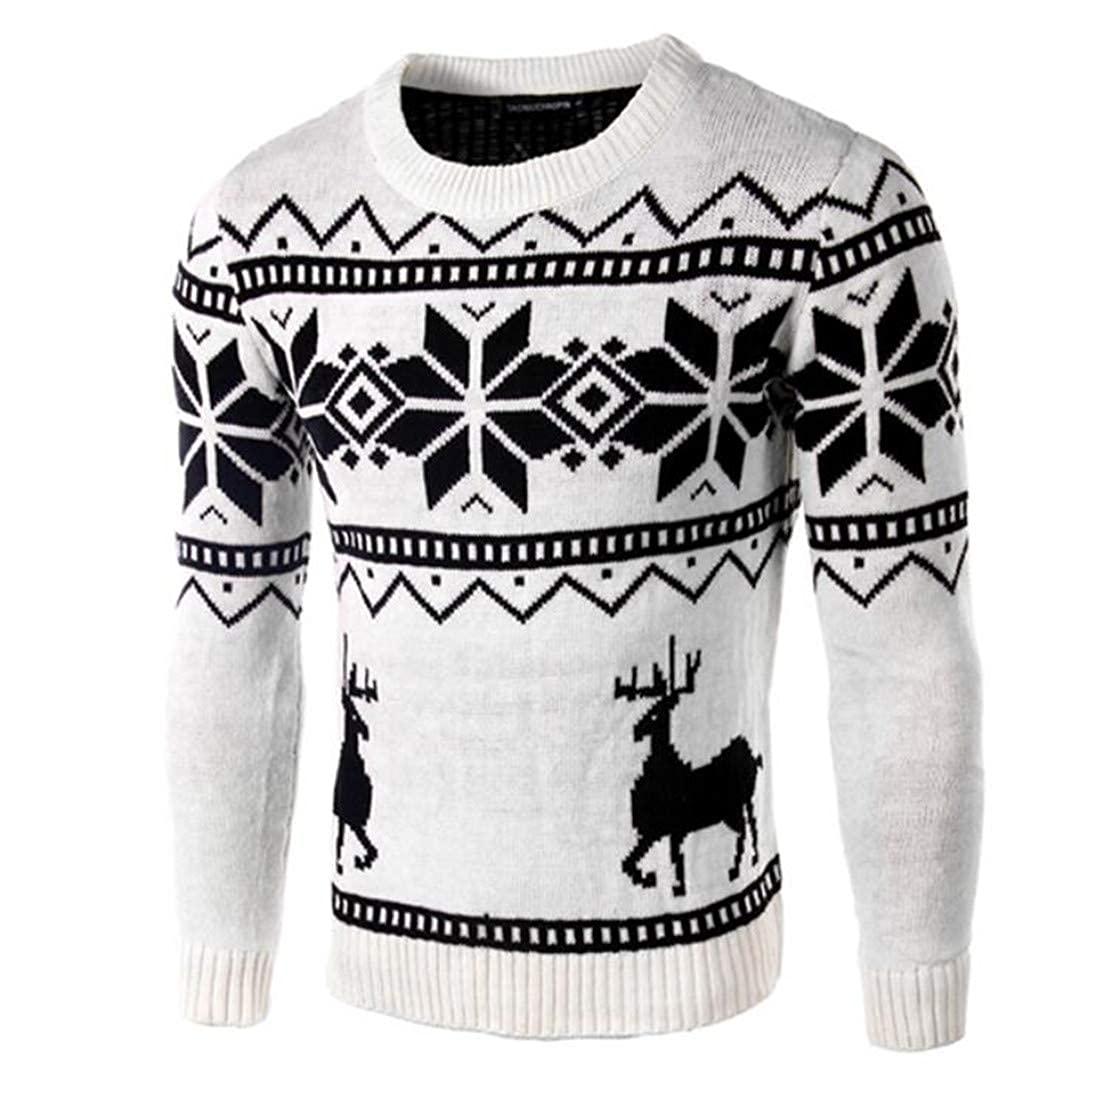 JXG Men Slim Fit Round Neck Long Sleeve Snowflake Knit Sweater Pullover